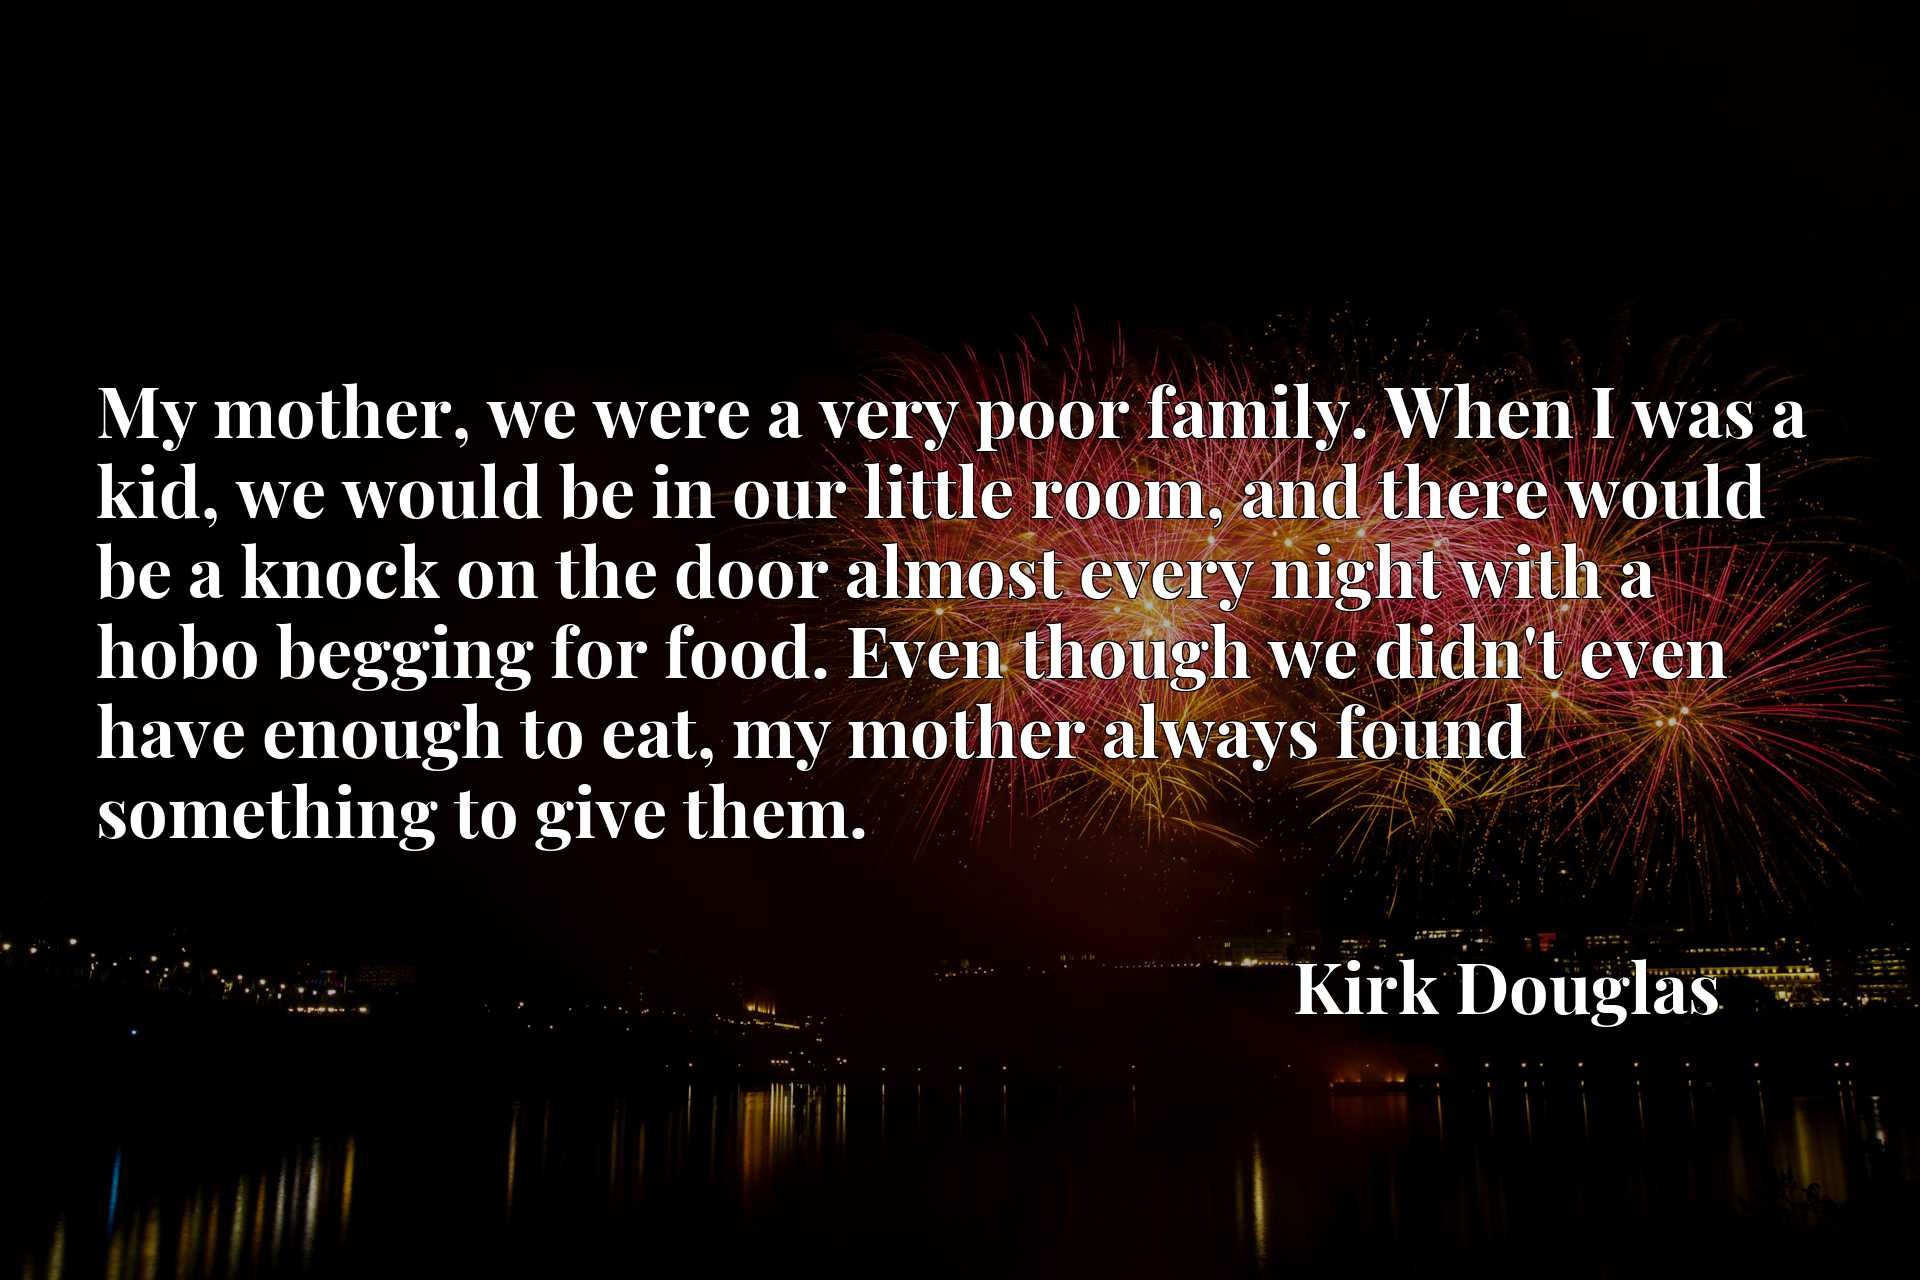 My mother, we were a very poor family. When I was a kid, we would be in our little room, and there would be a knock on the door almost every night with a hobo begging for food. Even though we didn't even have enough to eat, my mother always found something to give them.